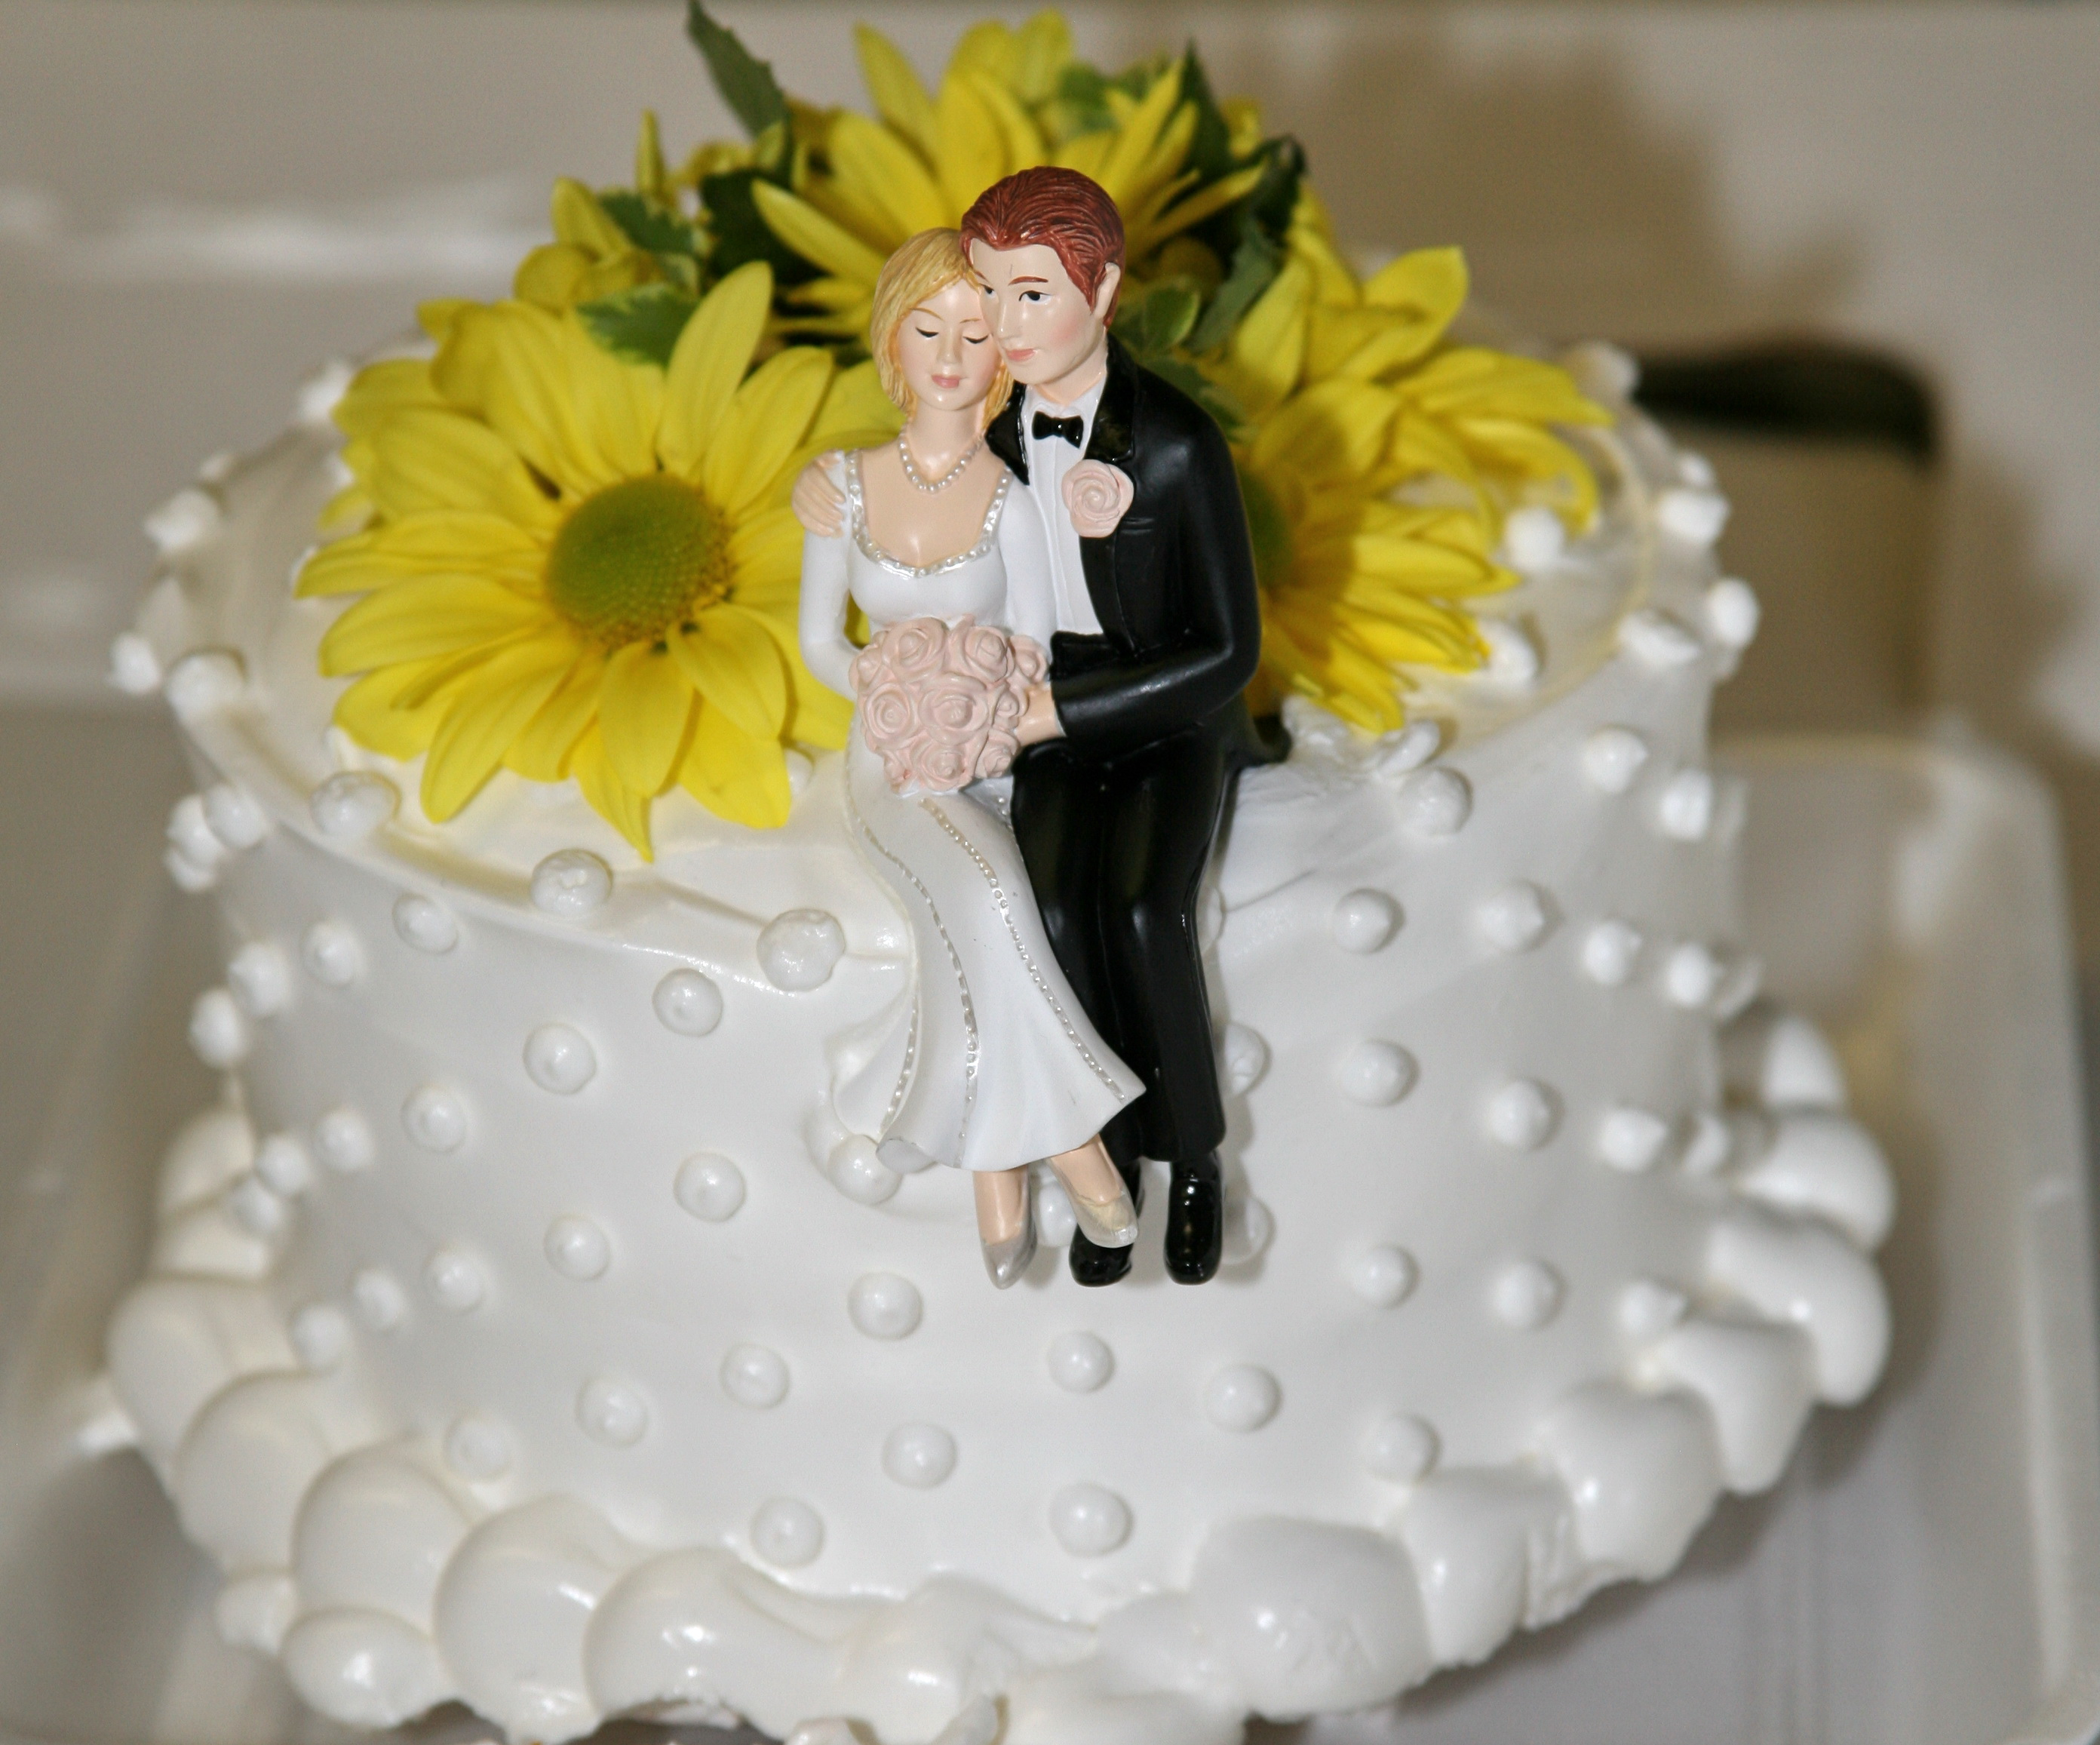 Licensed Cake Toppers